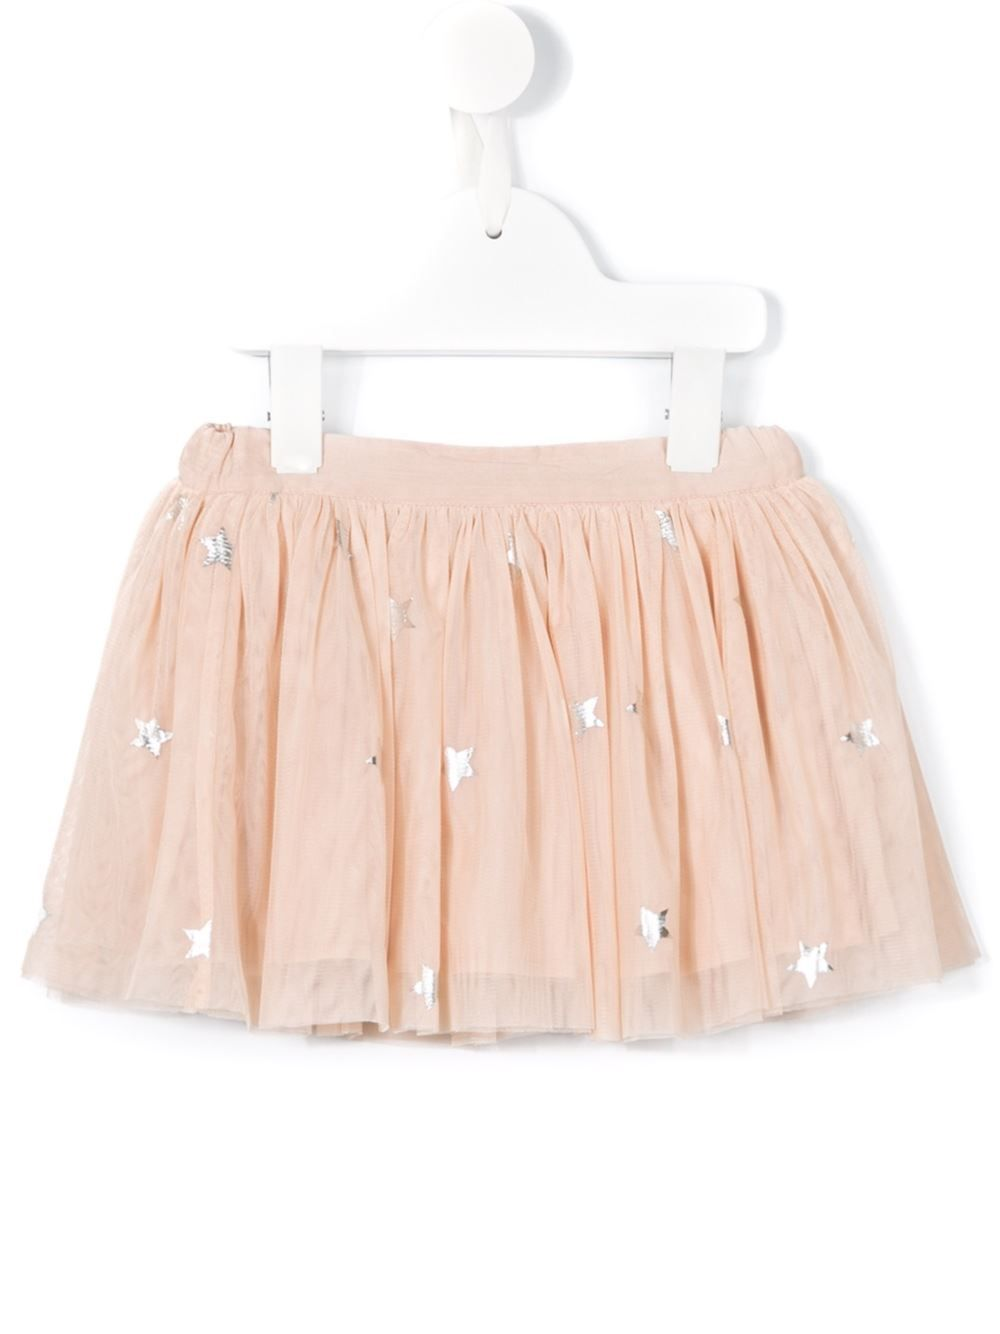 bd17e9819 stellamccartney #kids #skirt #star #pink #blush #nude #girls www ...